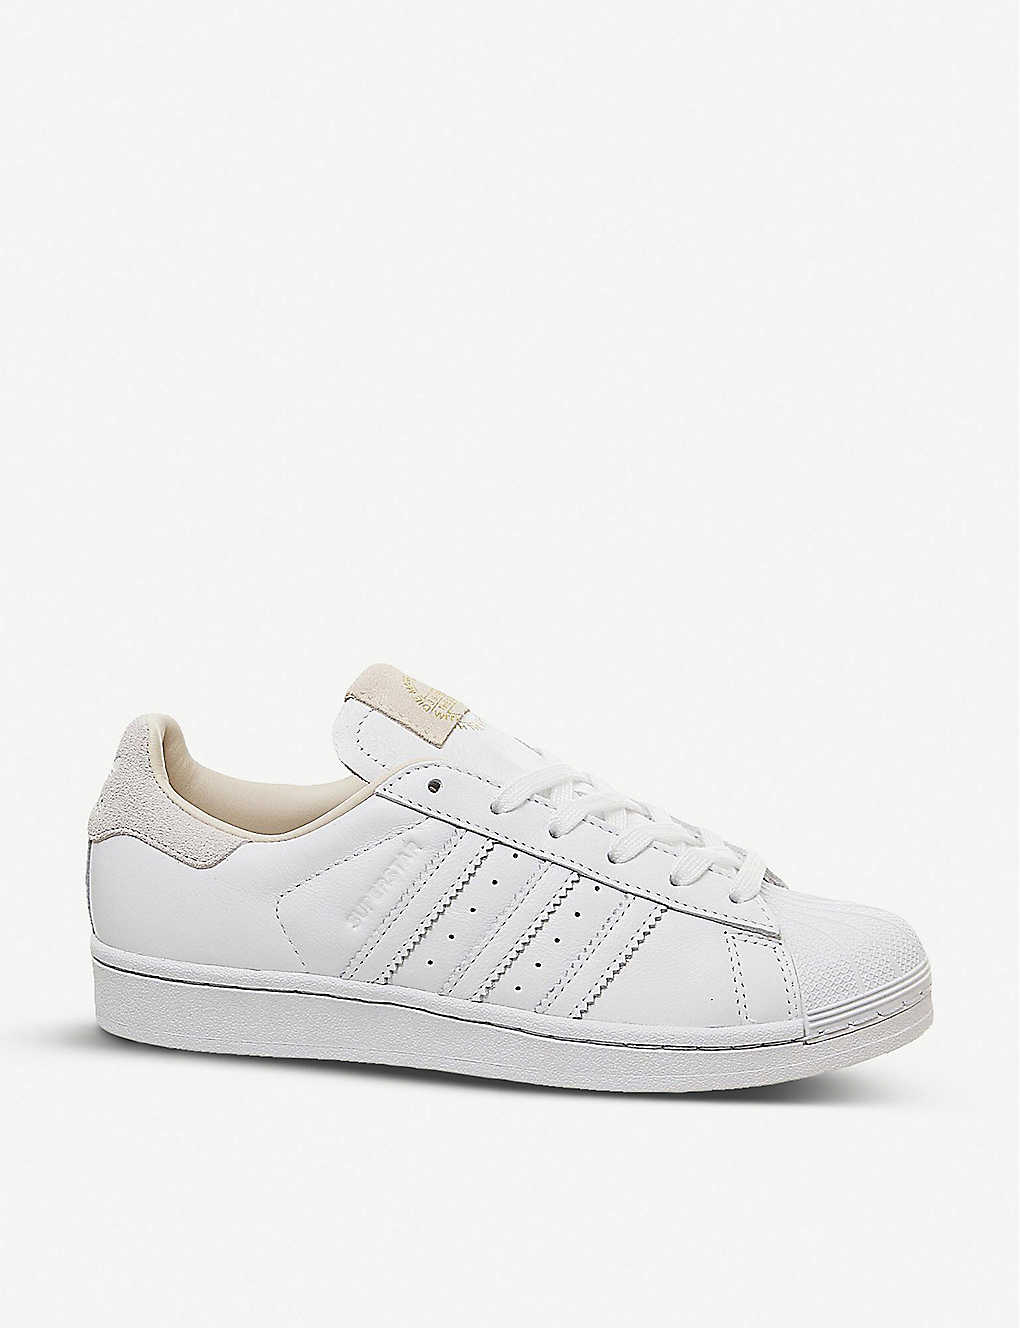 ozone lethal snowman  ADIDAS - Superstar 1 leather trainers | Selfridges.com